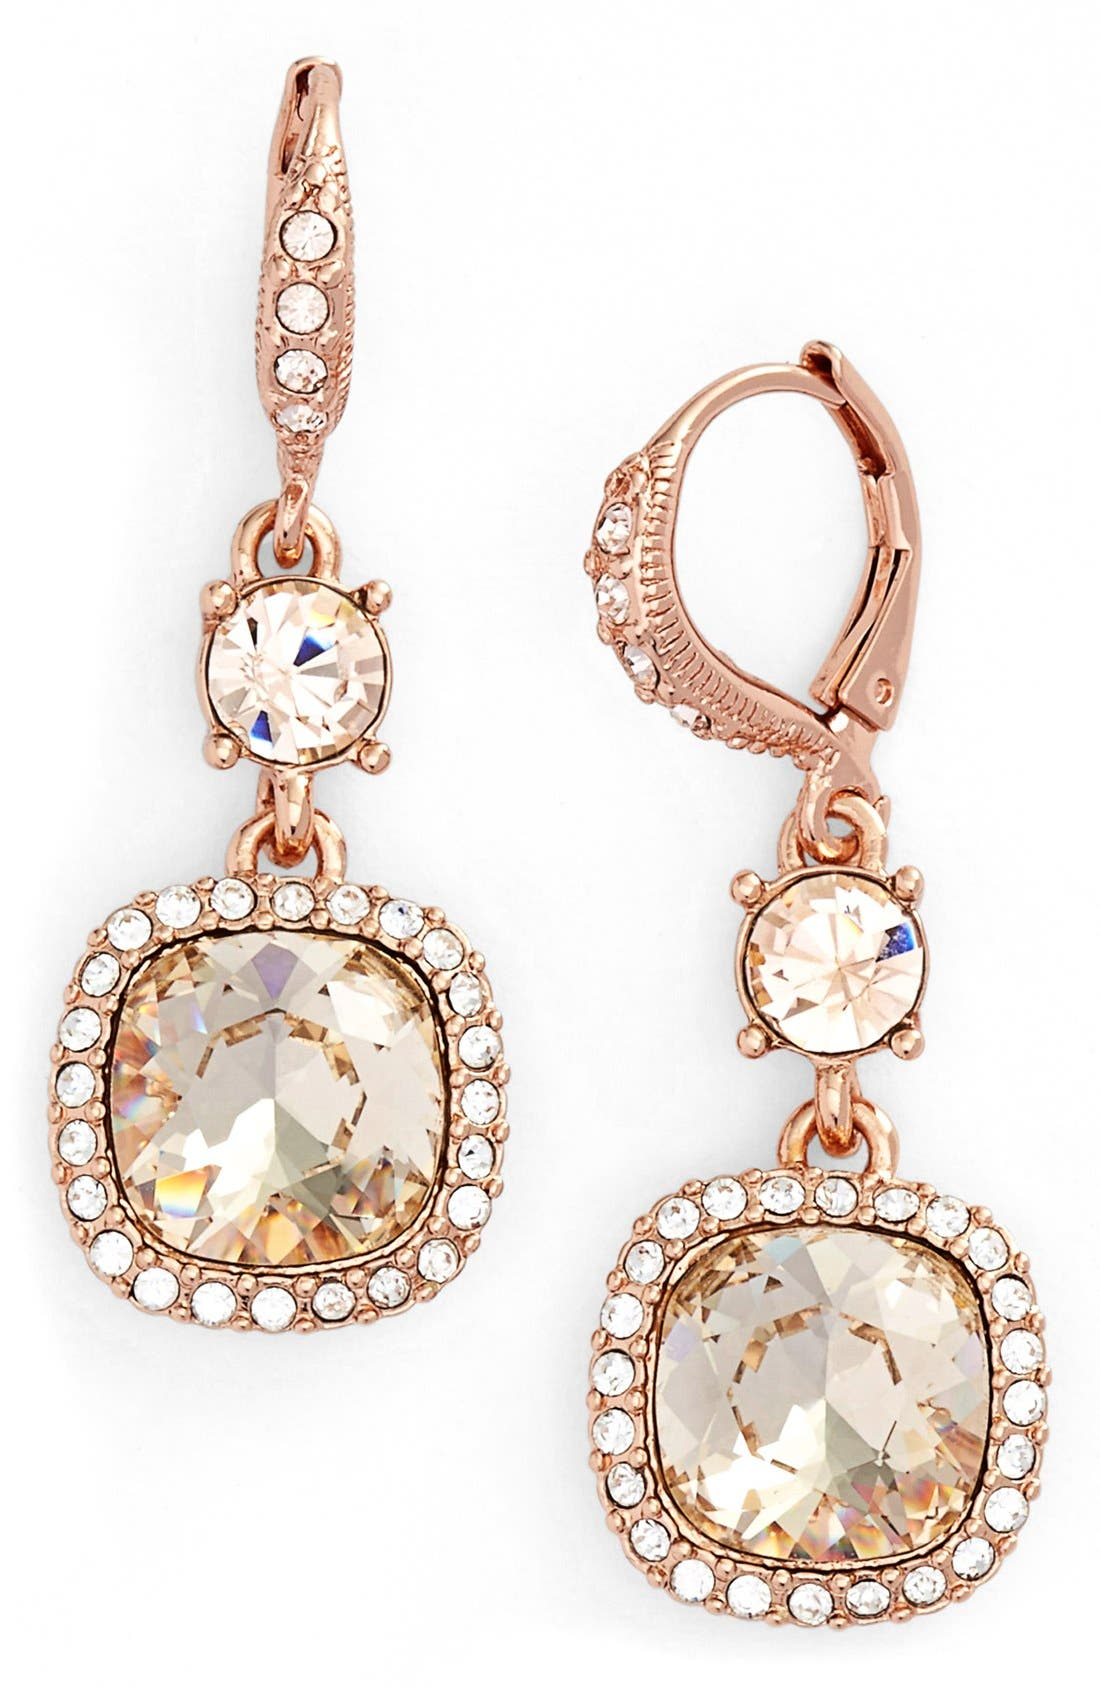 GIVENCHY Legacy Drop Earrings